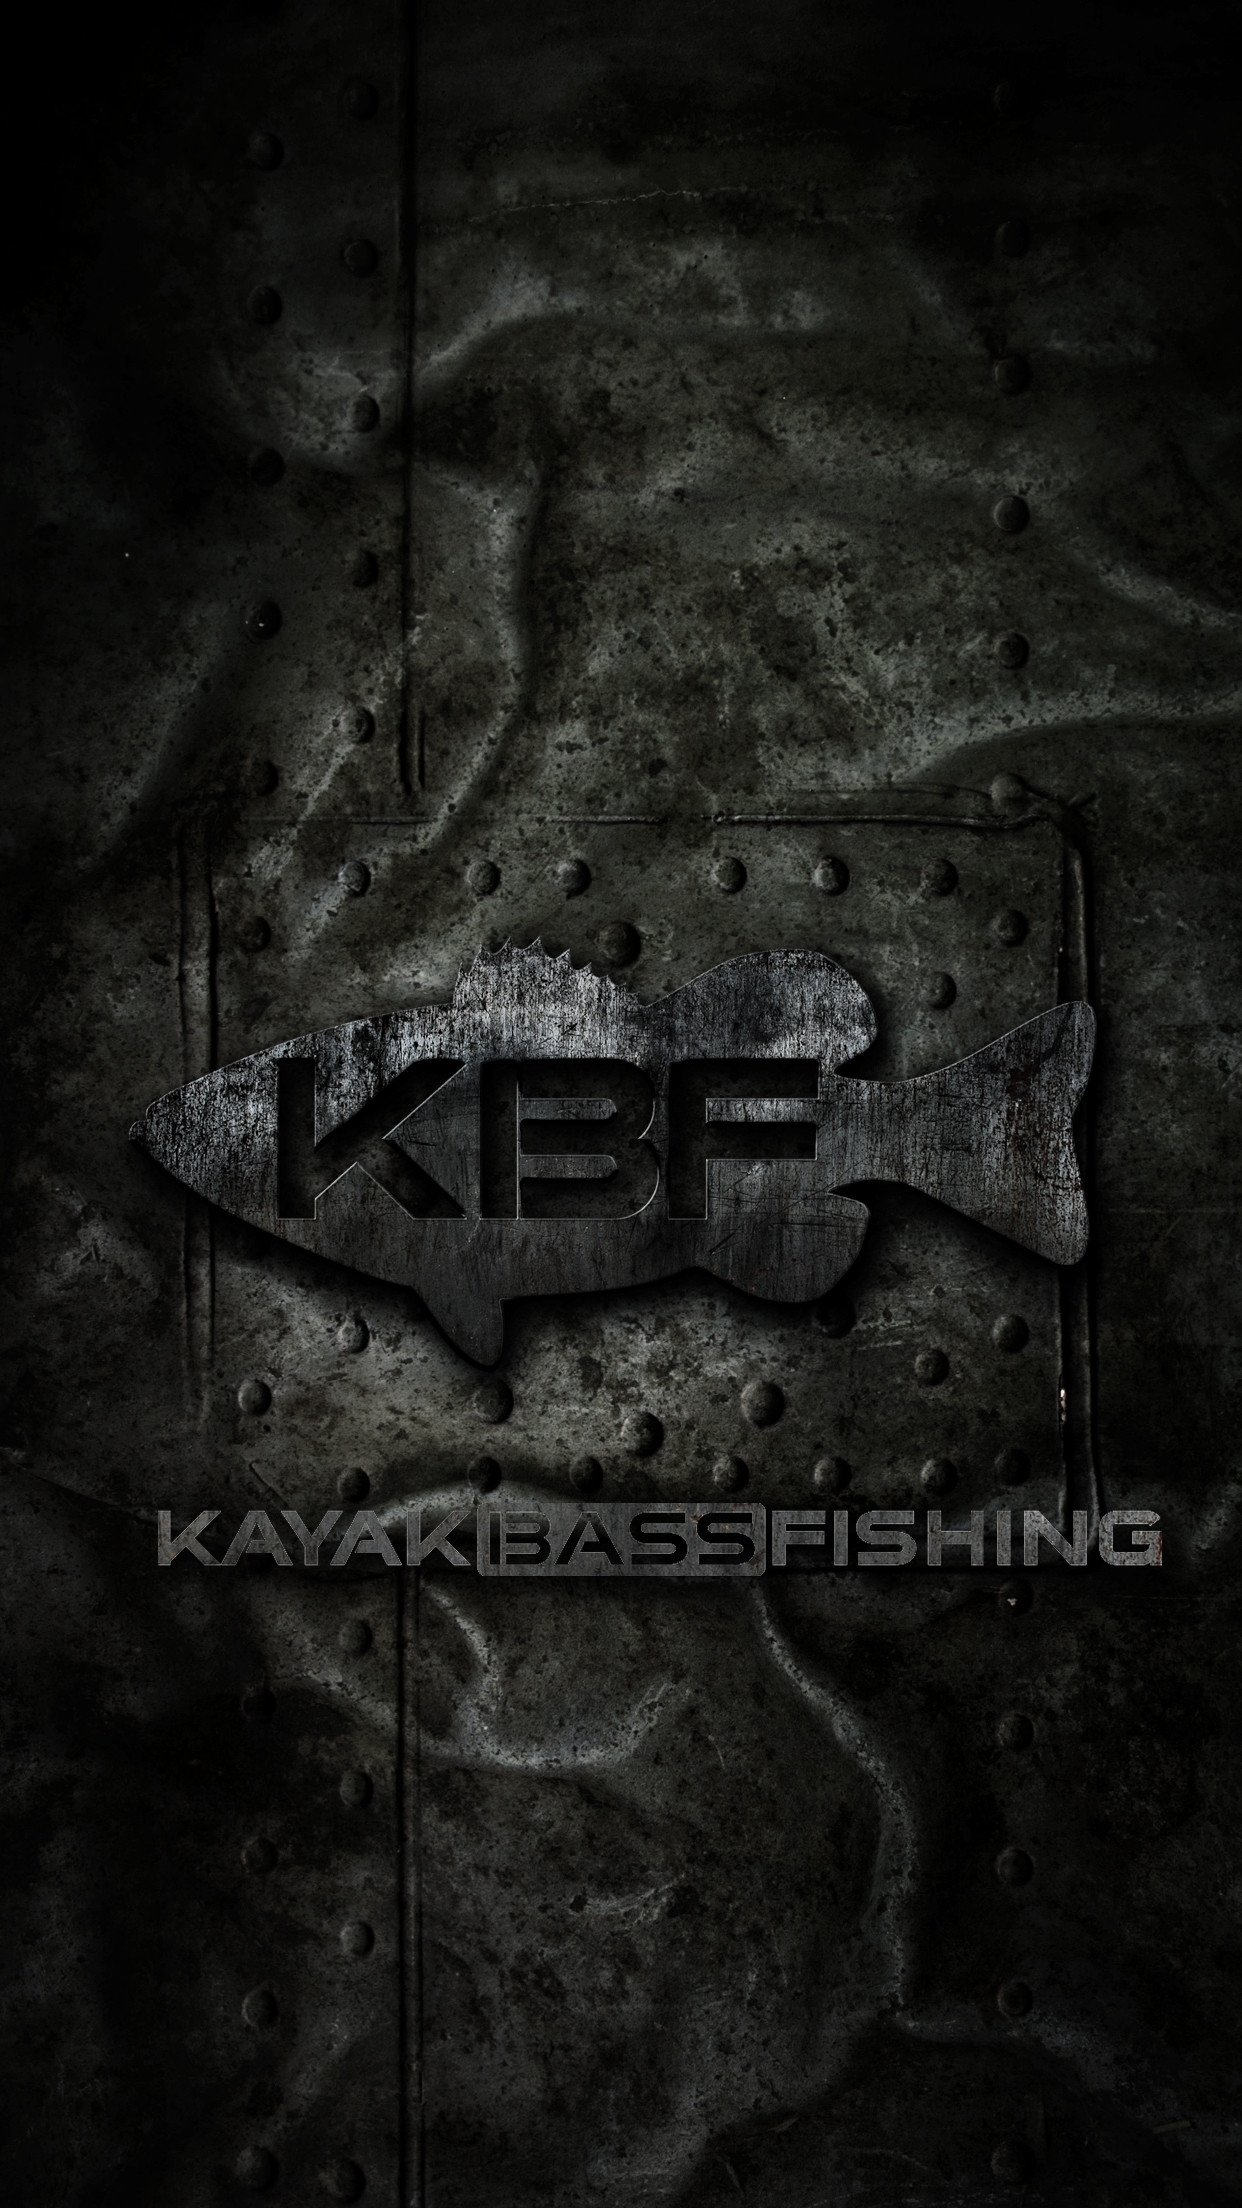 bass fishing wallpaper for iphone 52+ - xshyfc